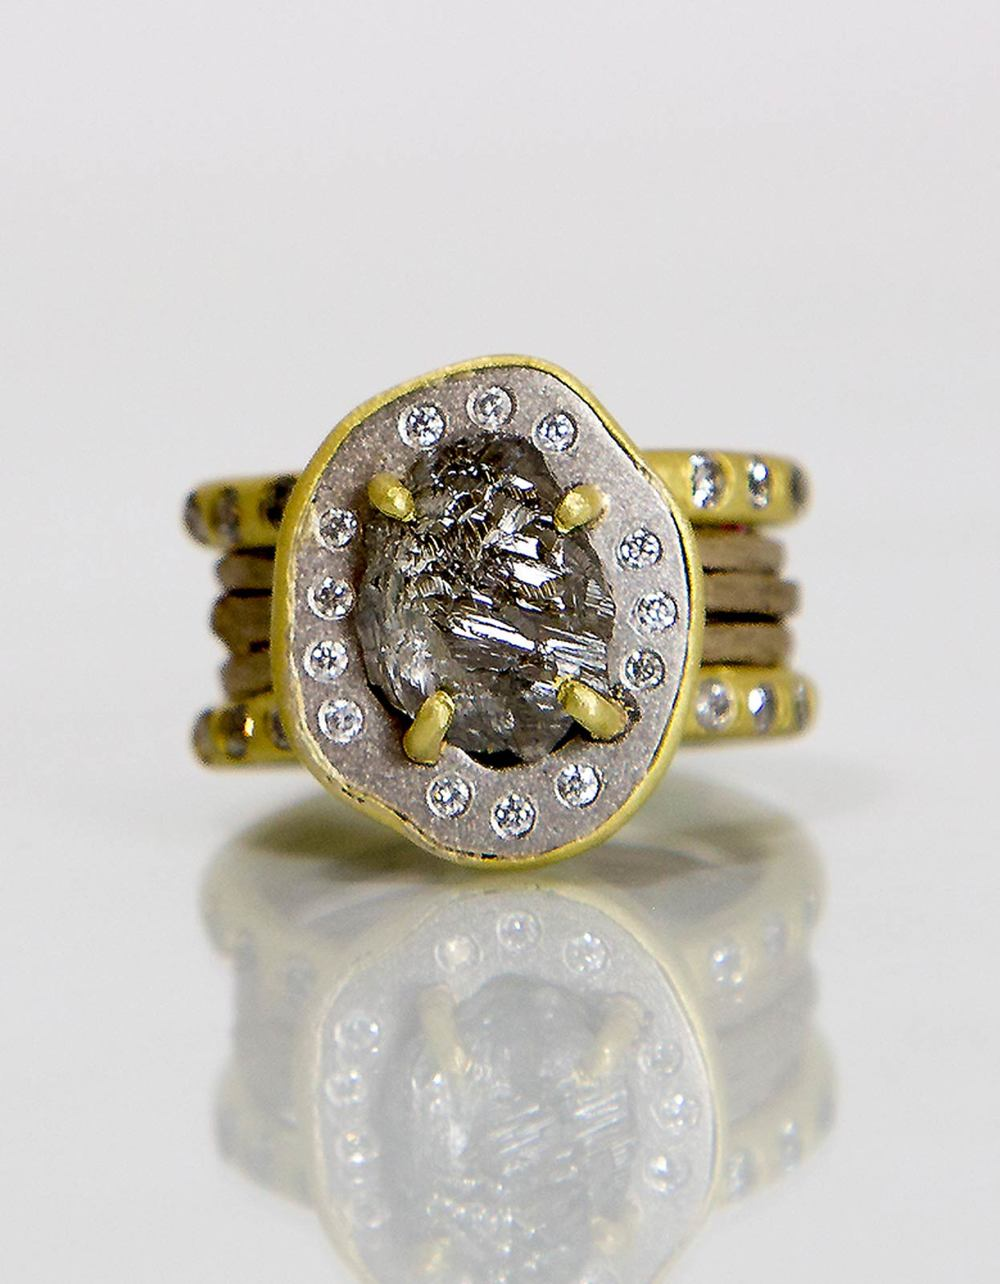 NATURAL GRAY DIAMOND RING of platinum, eighteen karat gold, diamonds, rough diamond, 2014. Photograph by Shannon Partrick.